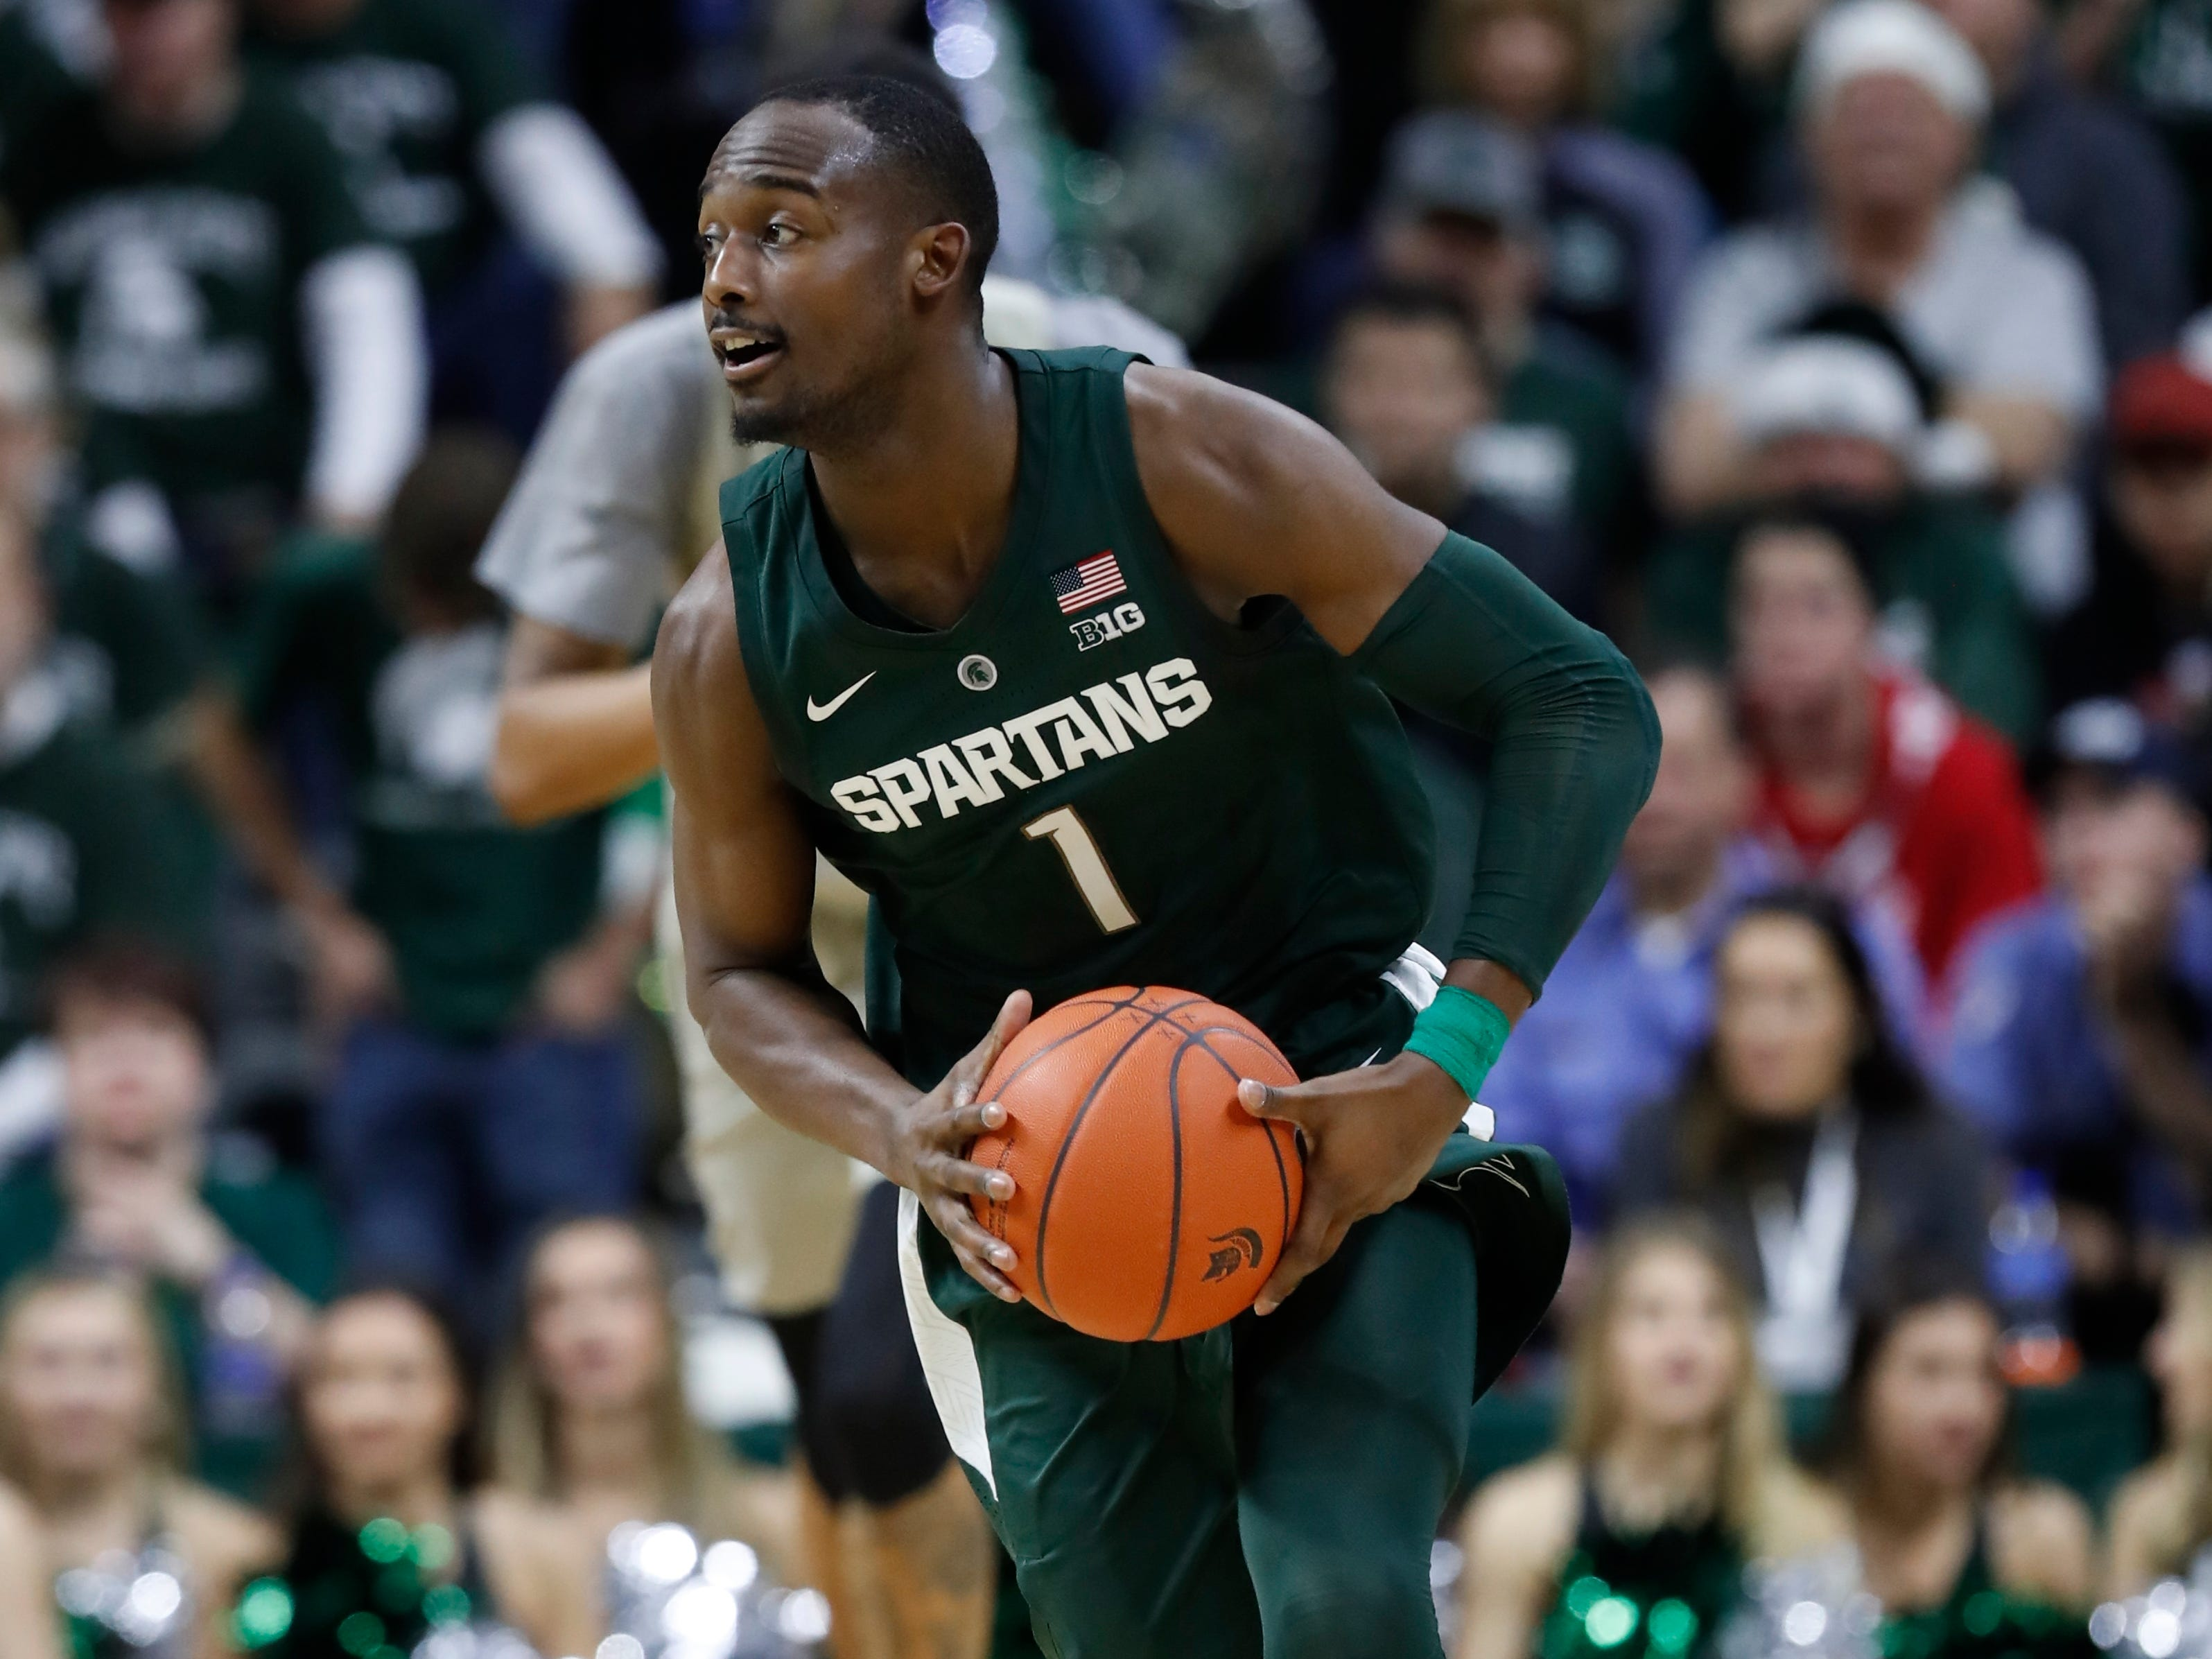 Michigan State guard Joshua Langford brings the ball up court during the second half of an NCAA college basketball game against Oakland, Friday, Dec. 21, 2018, in East Lansing, Mich.